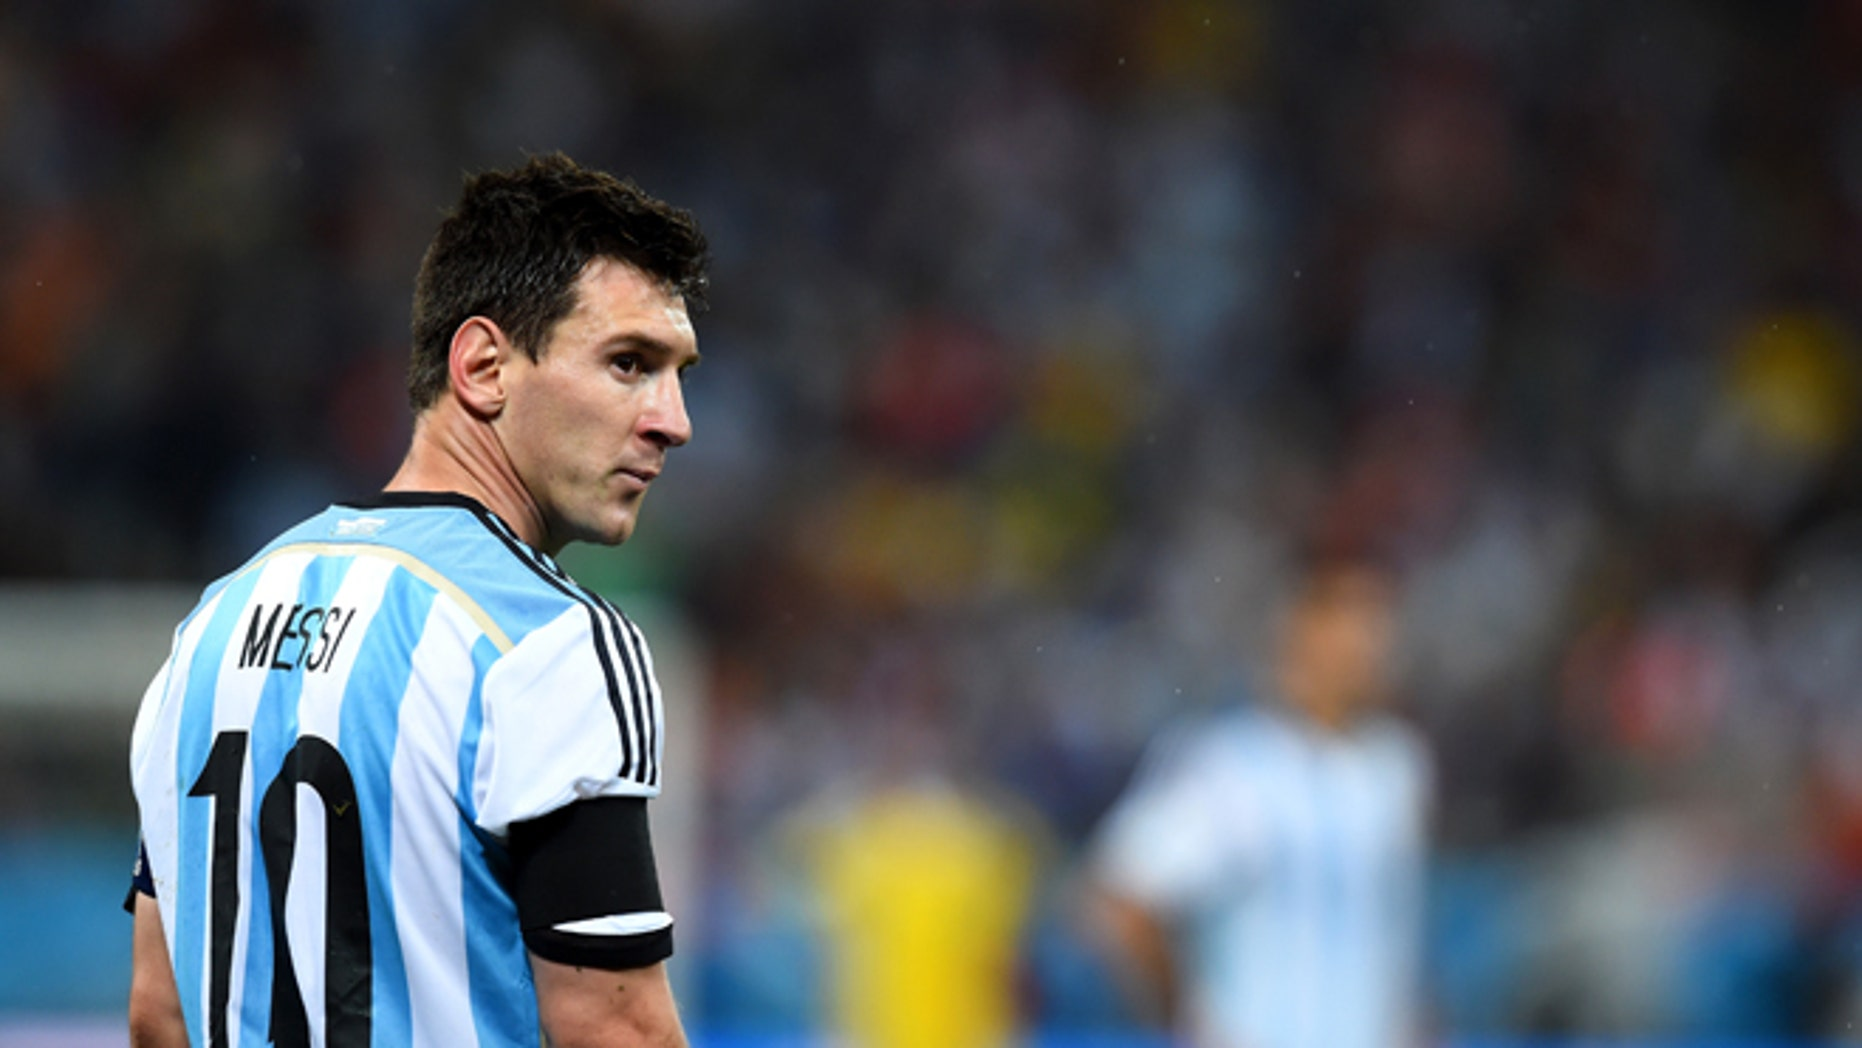 Lionel Messi of Argentina looks on at Arena de Sao Paulo on July 9, 2014 in Sao Paulo, Brazil.